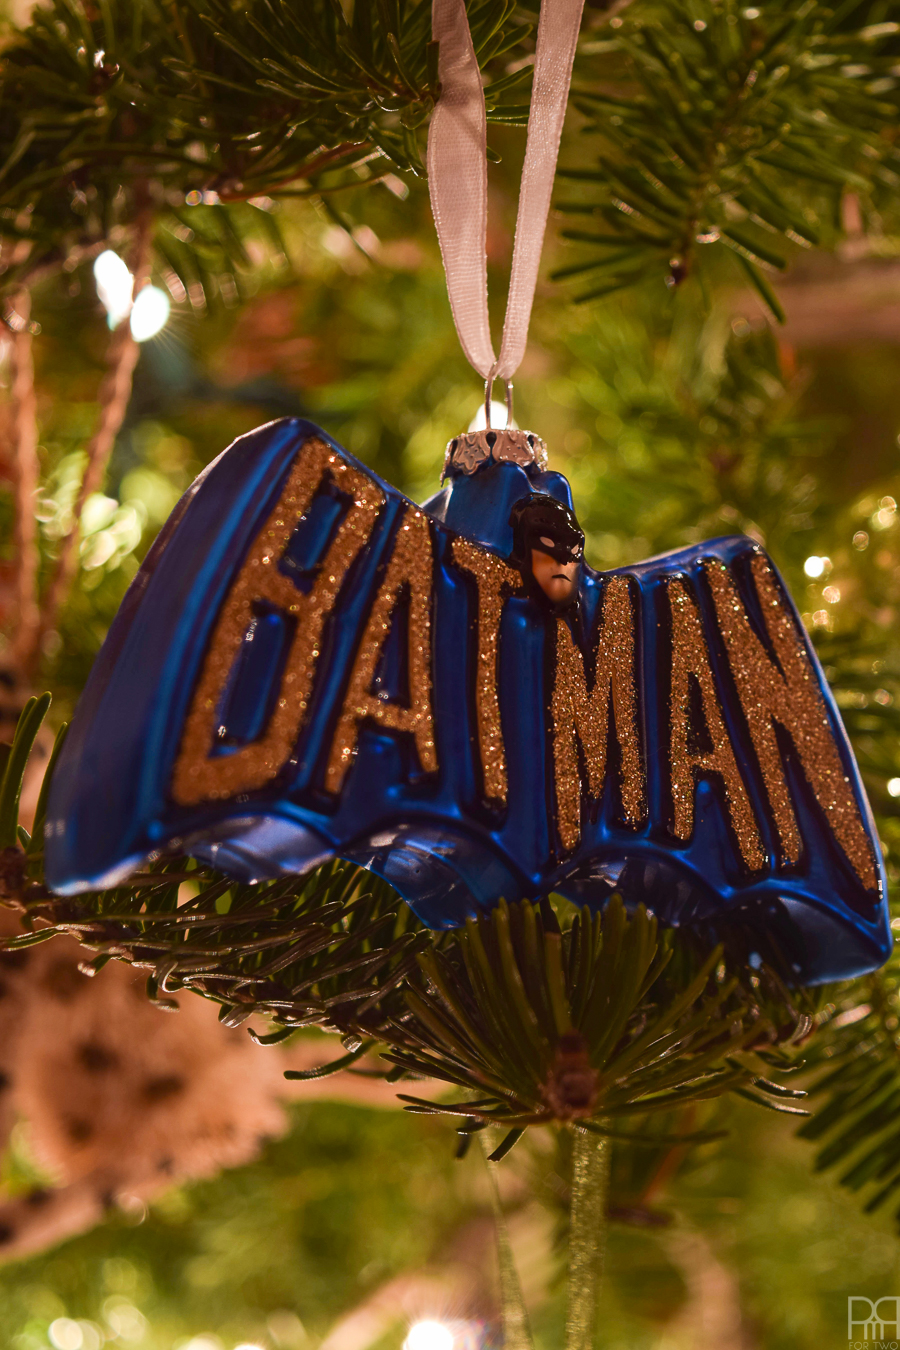 my-home-style-eclectic-bauble-tree-25